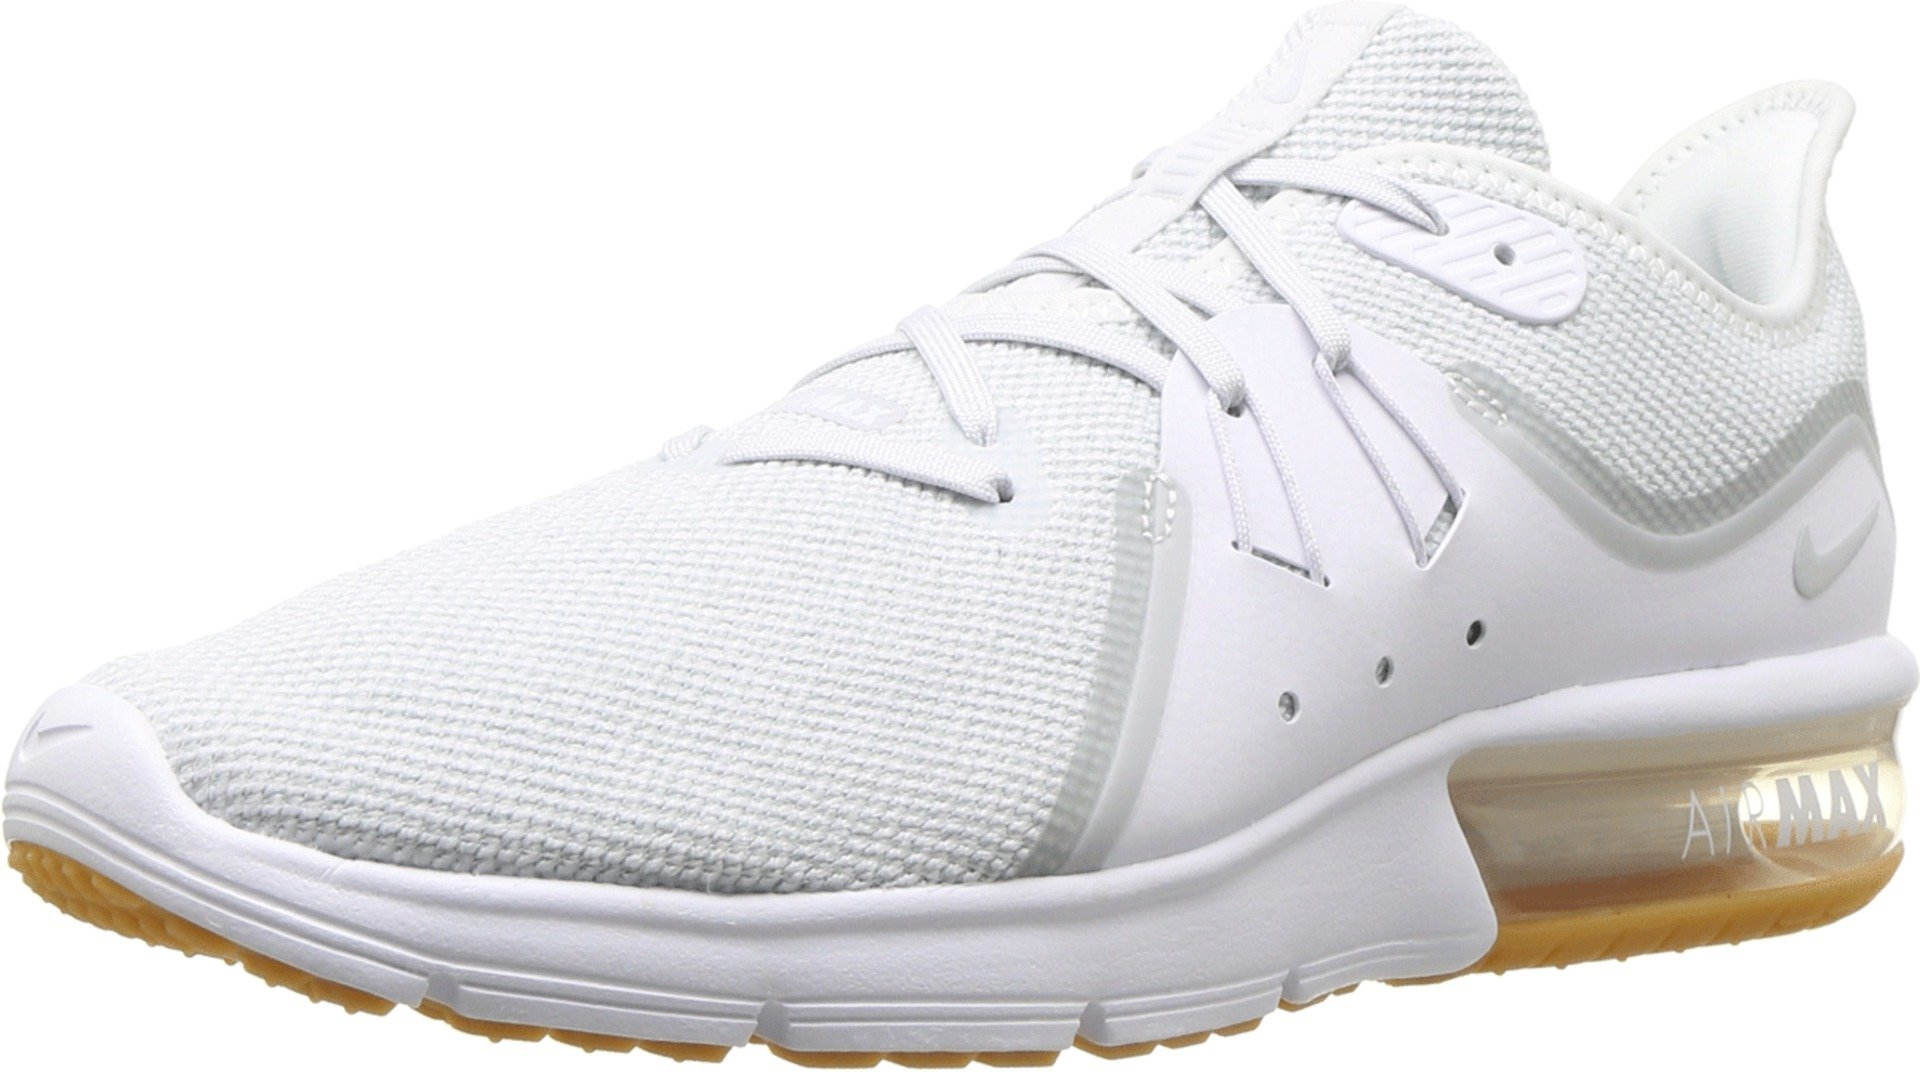 best sneakers c608a 53137 Galleon - Nike Air Max Sequent 3 Mens 921694-101 Size 6.5 White Pure  Platinum